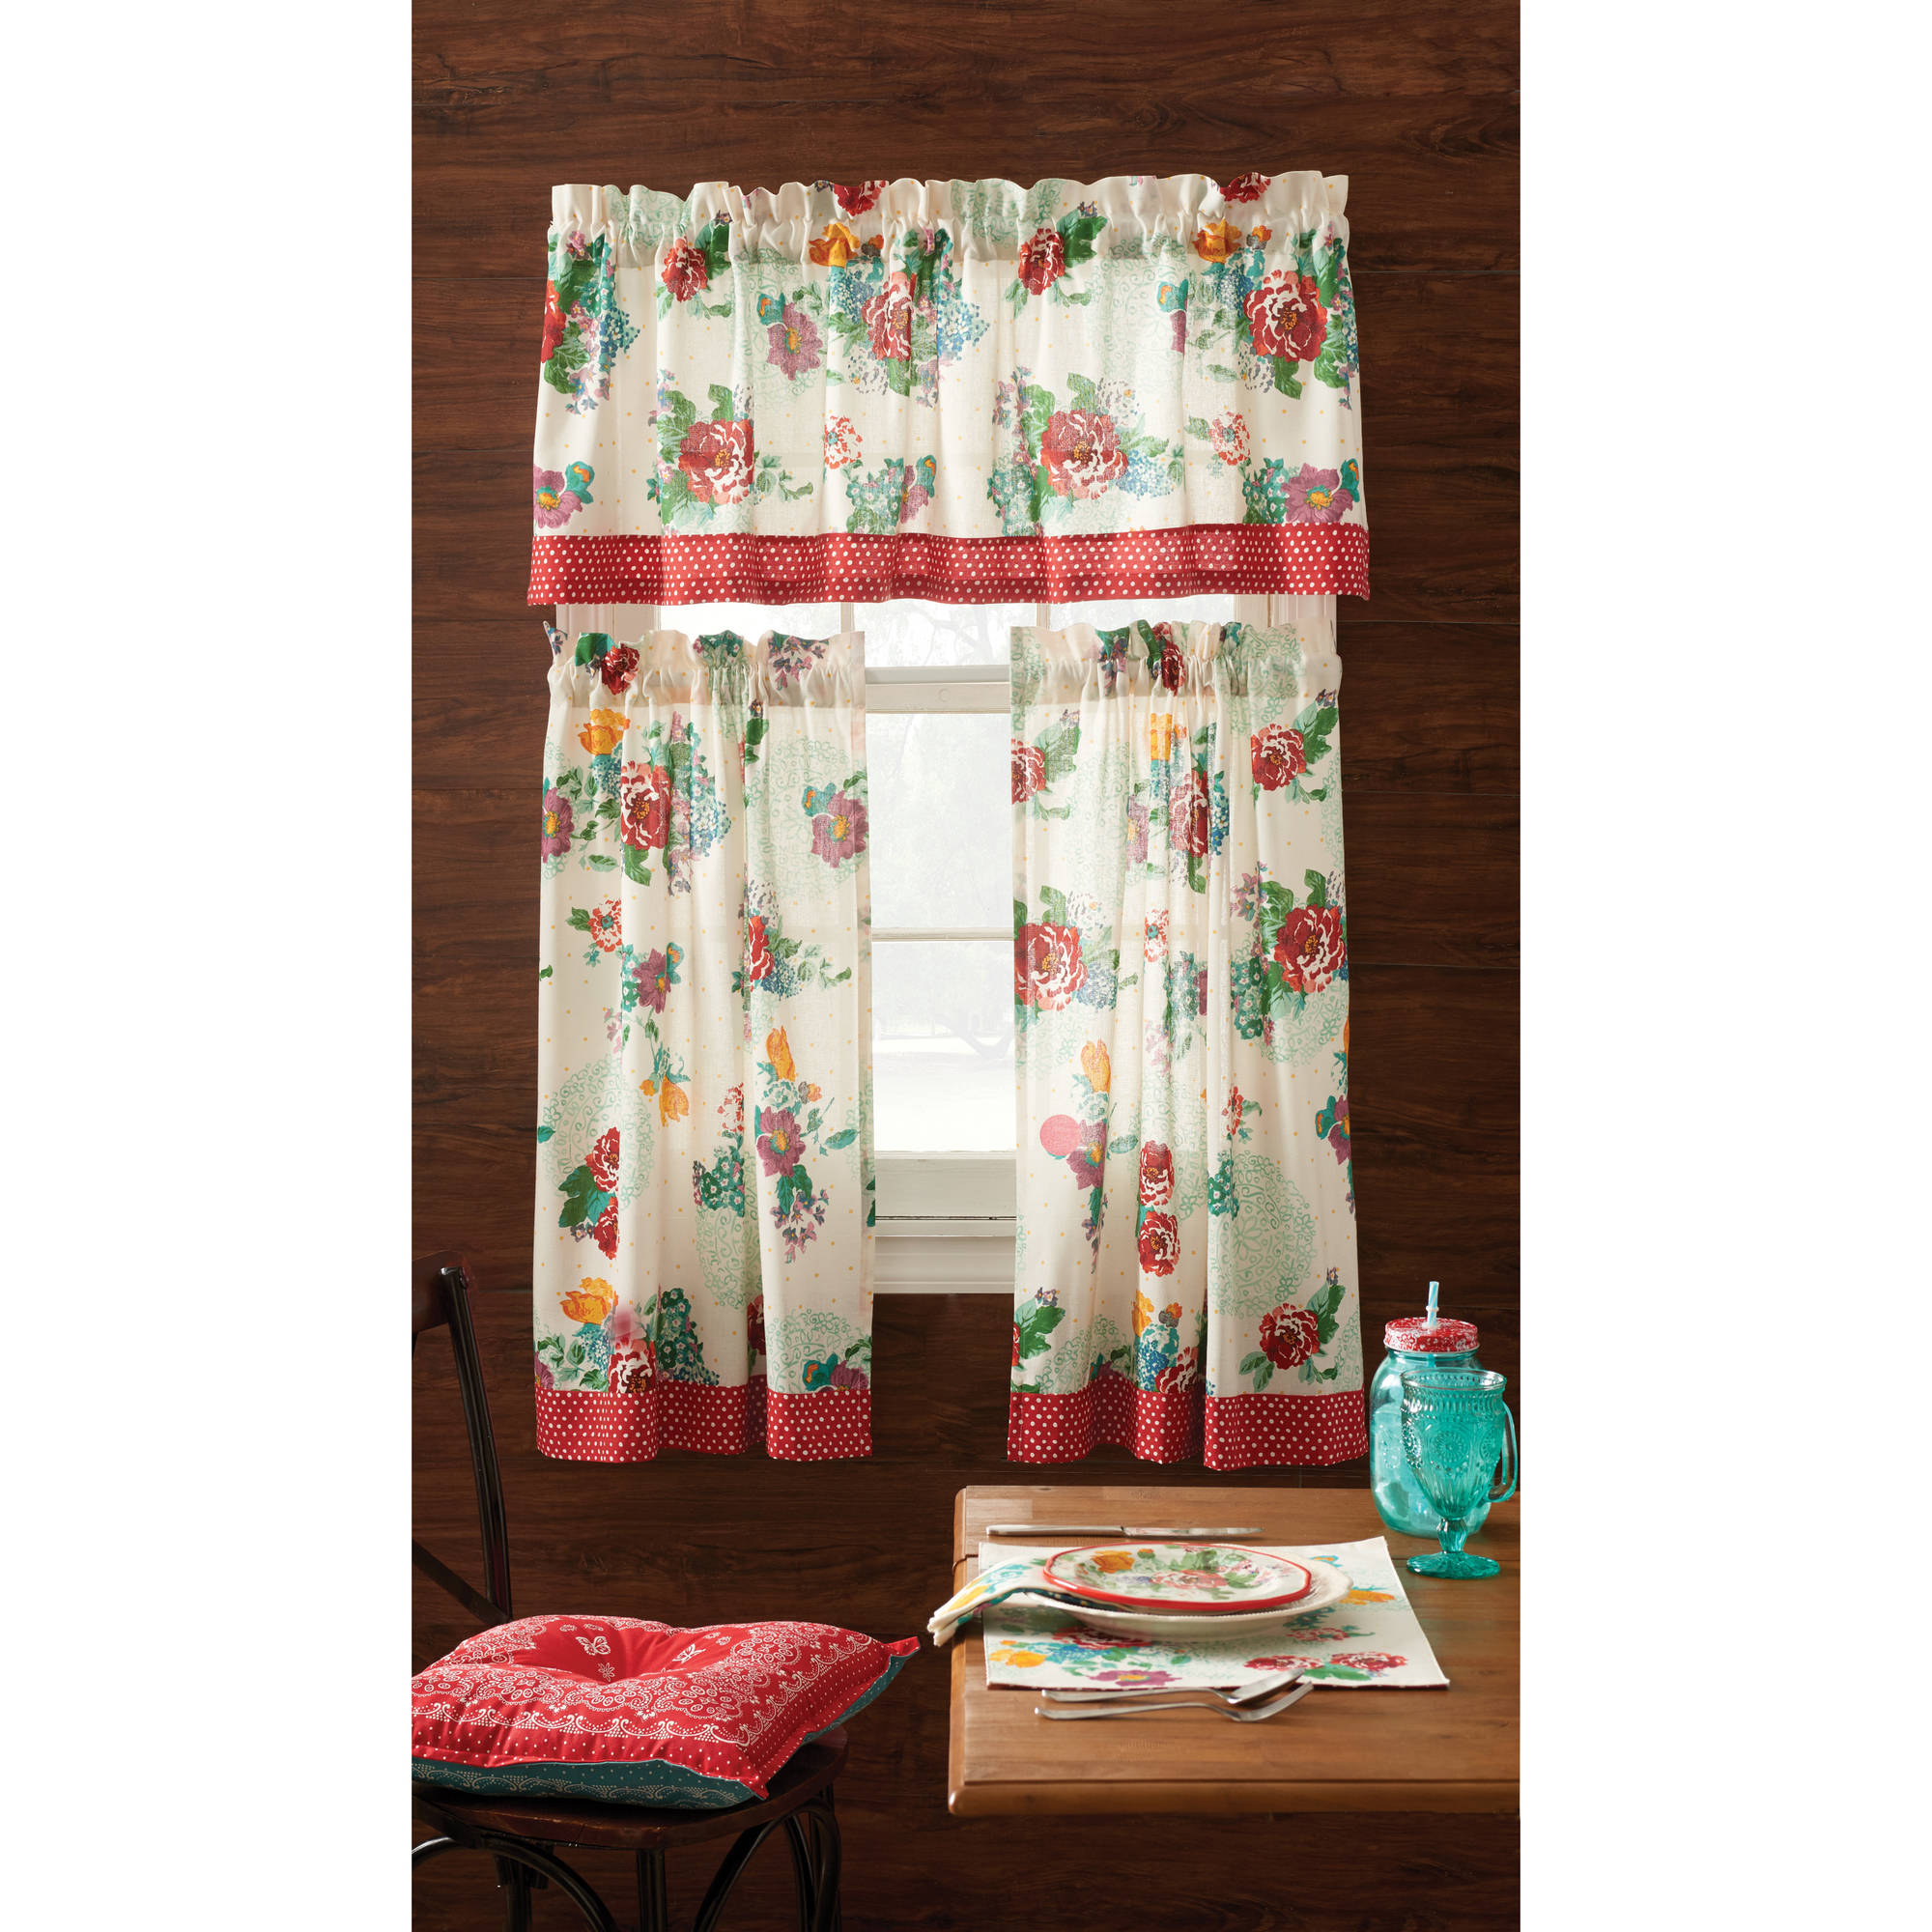 Classic Kitchen Curtain Sets Pertaining To Preferred The Pioneer Woman Country Garden 3 Piece Kitchen Curtain Tier And Valance  Set – Walmart (View 9 of 20)